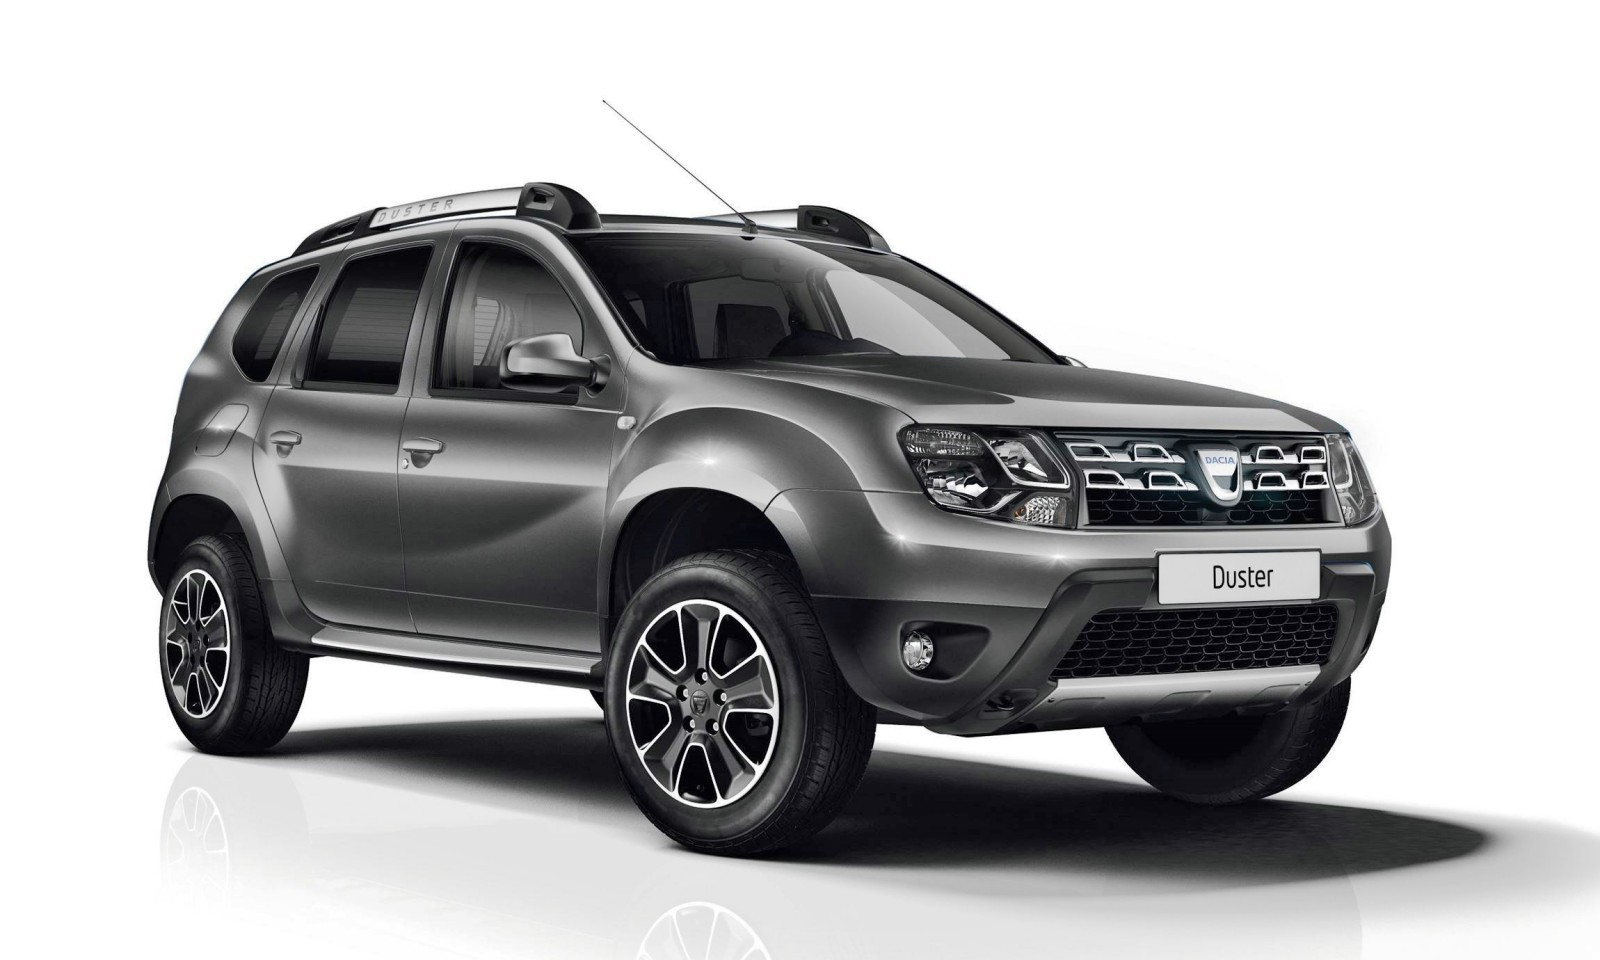 2016 dacia duster. Black Bedroom Furniture Sets. Home Design Ideas